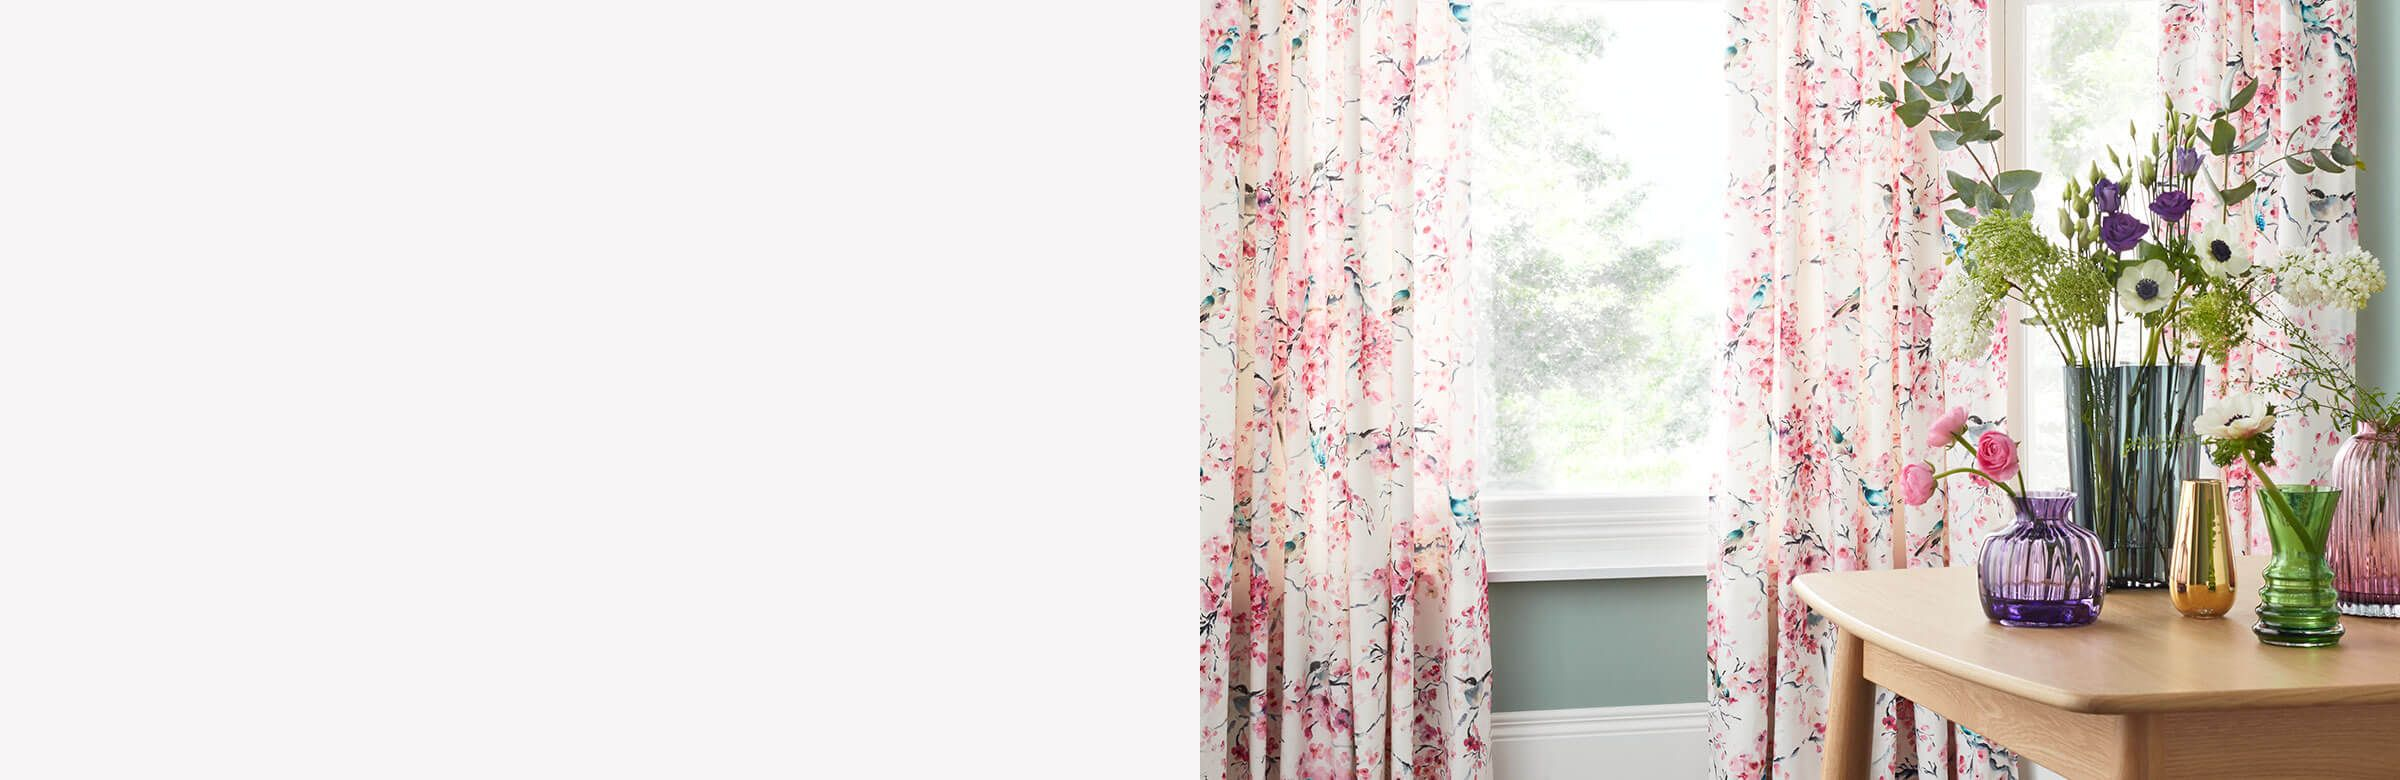 Choosing Your New Curtains